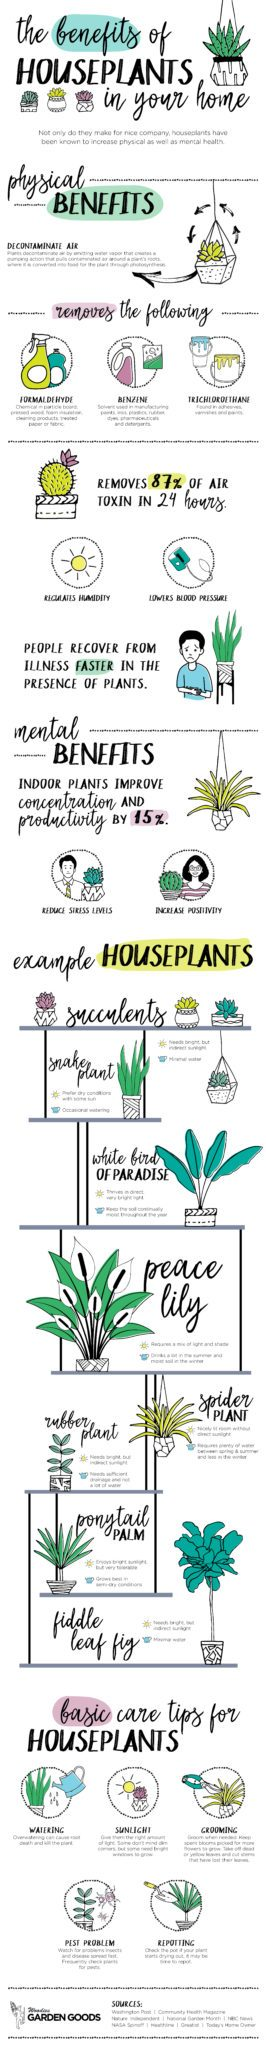 The Benefits of Houseplants in Your Home